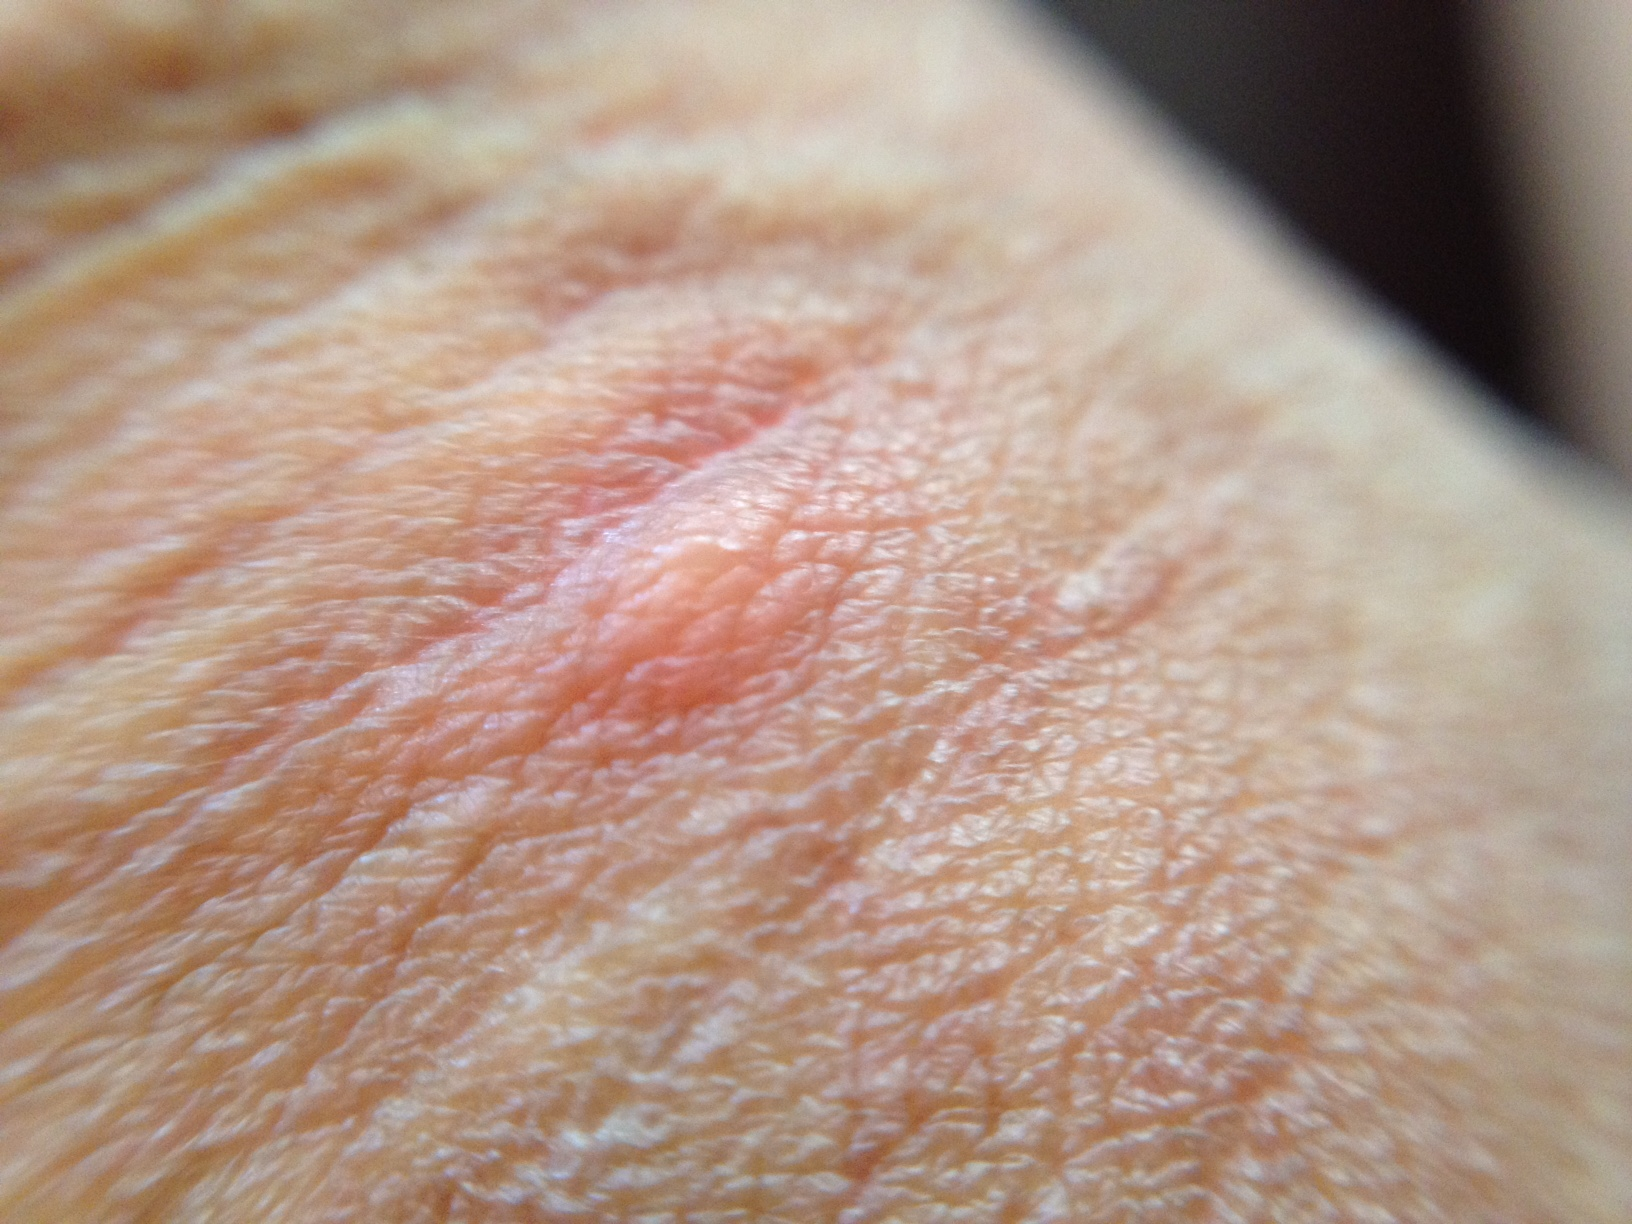 Small Red Bump On Penis 78